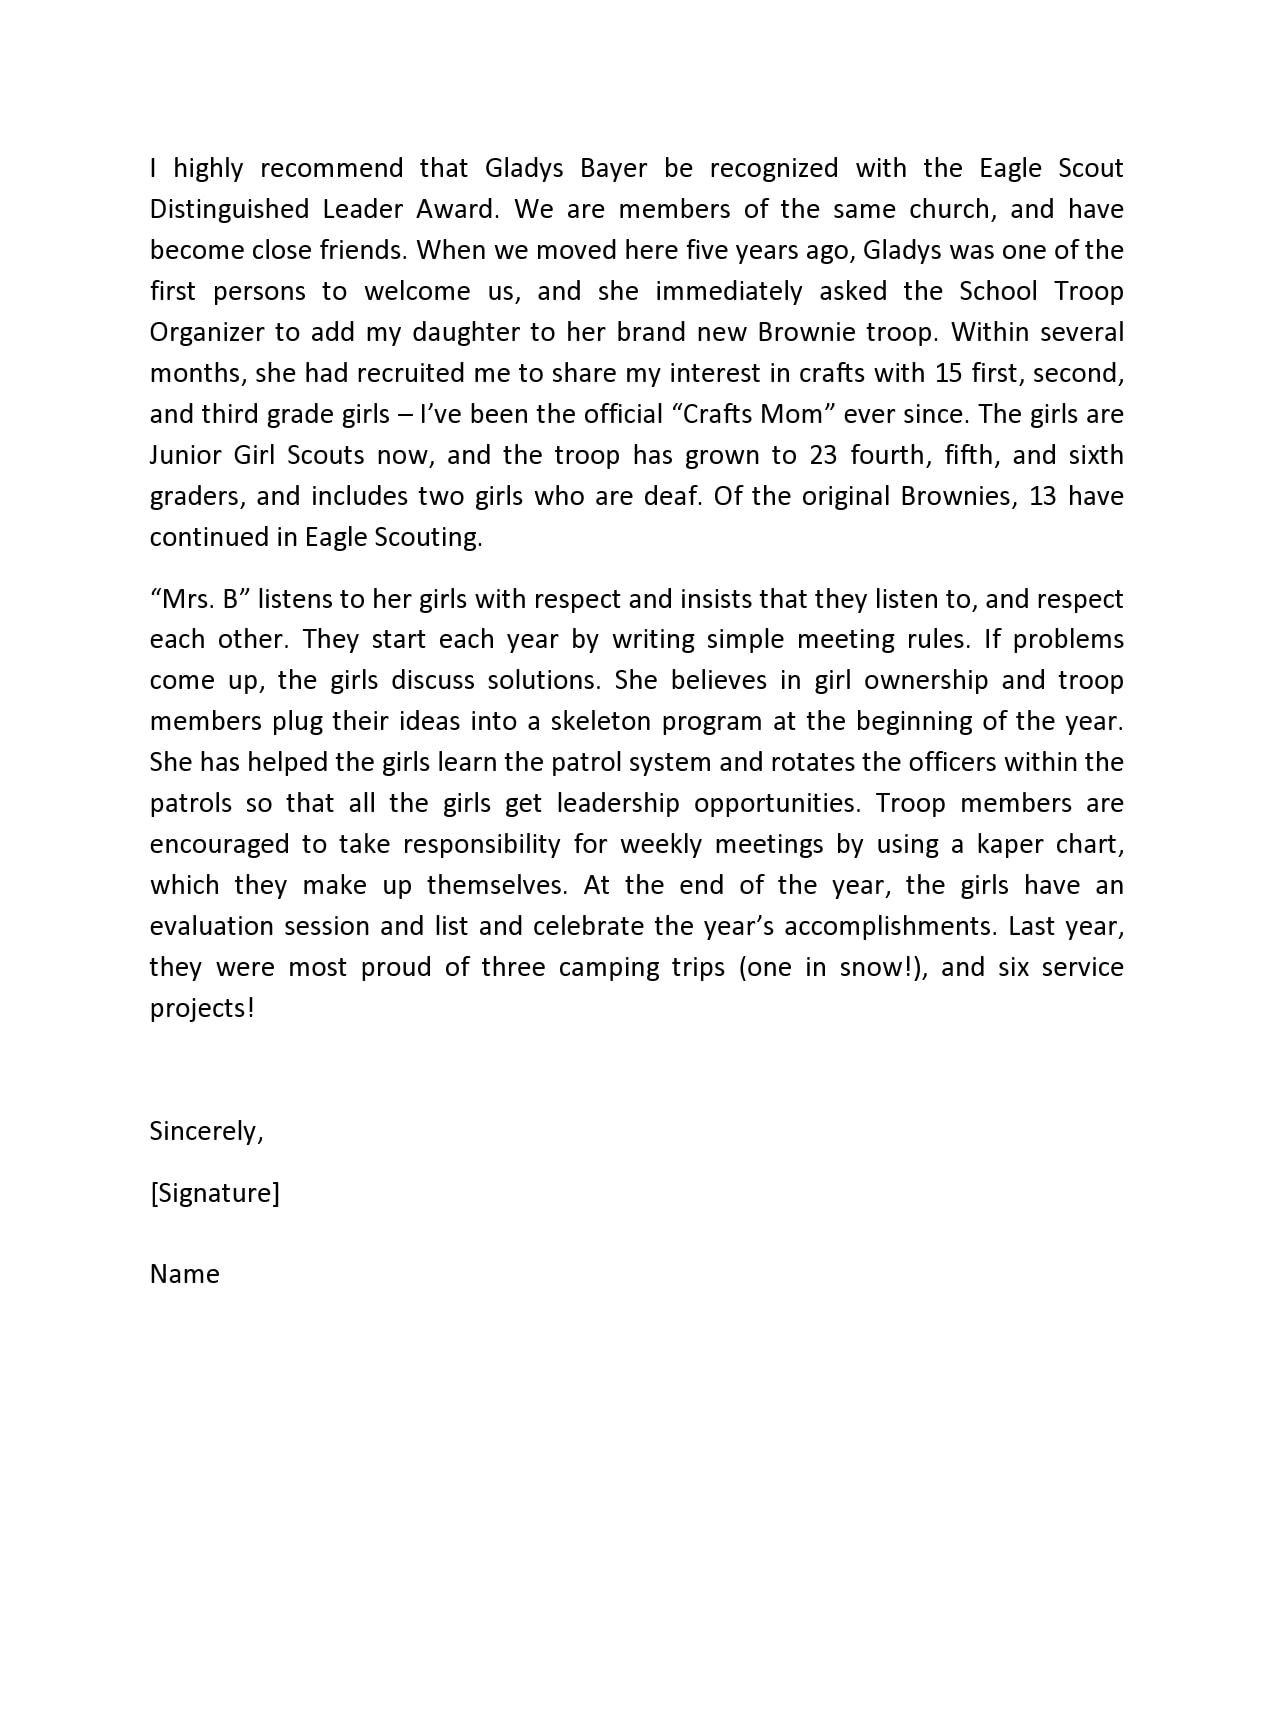 eagle scout letter of recommendation 14